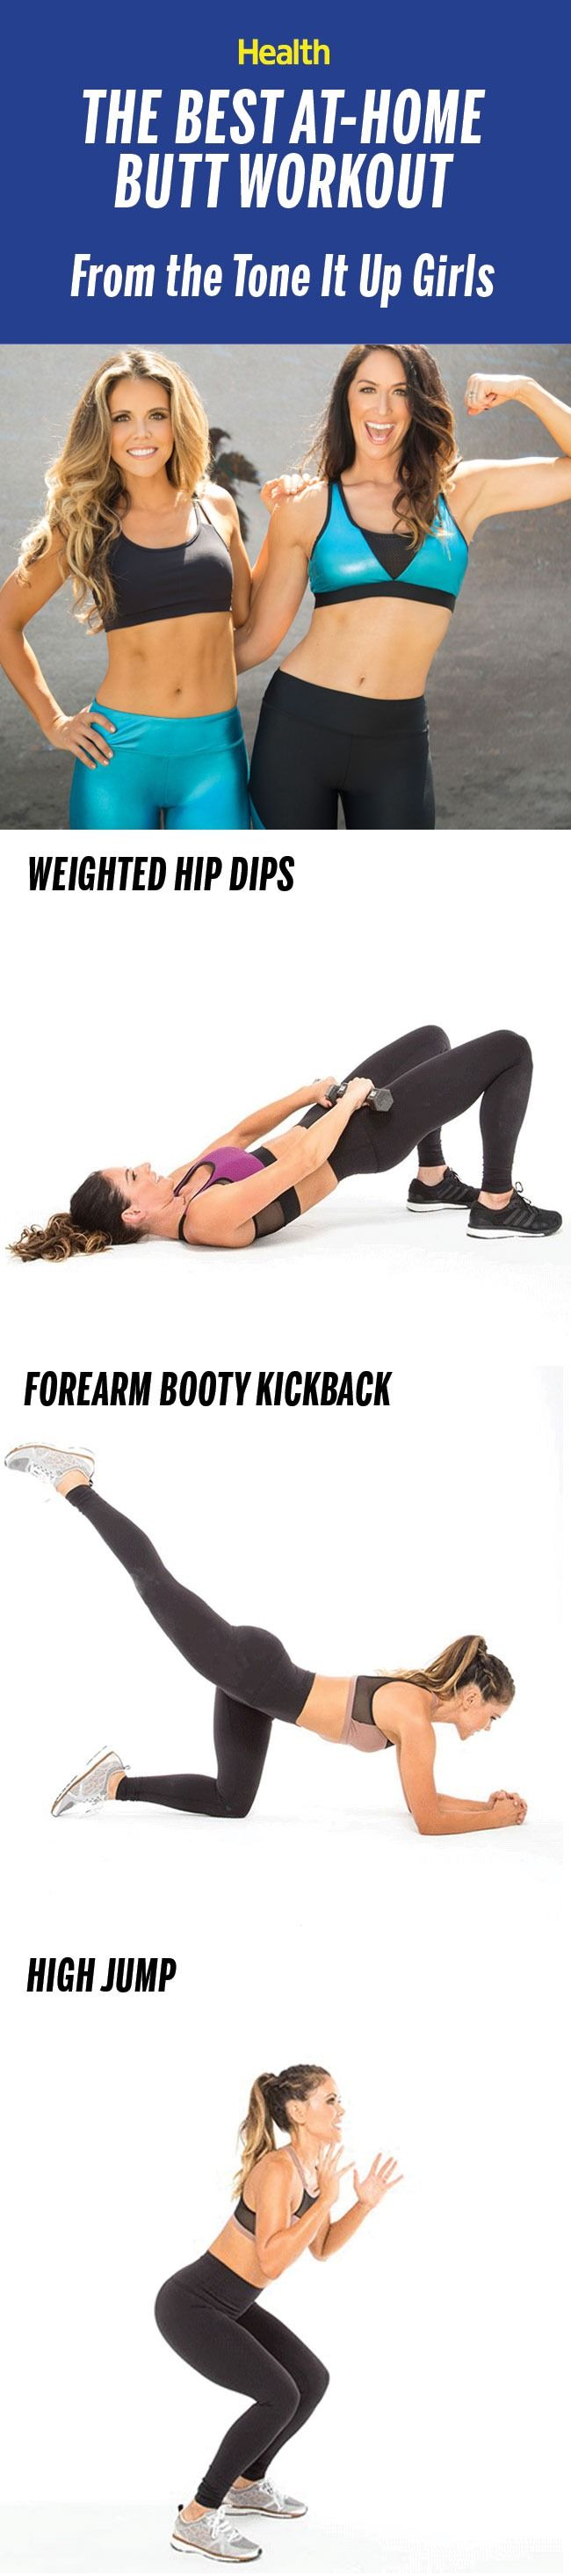 This is the butt-sculpting workout the Tone It Up girls swear by. | Health.com